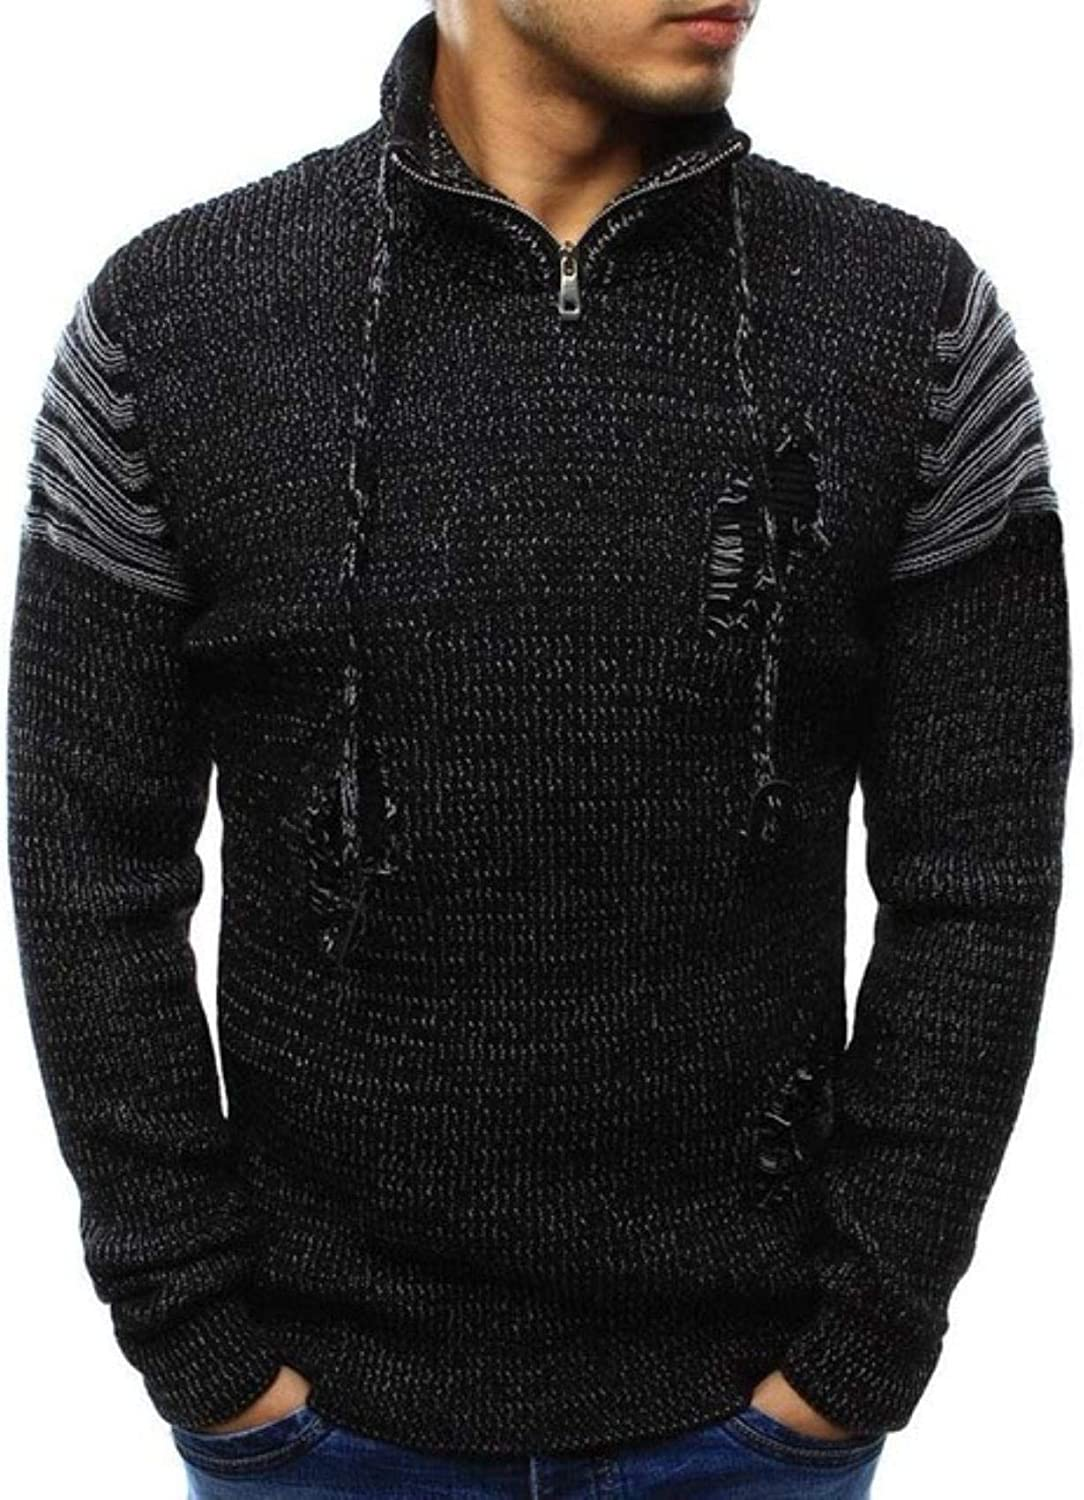 Autumn Winter Sweater Men New Gifts Cotton Knitted Pullov Solid Max 70% OFF Casual